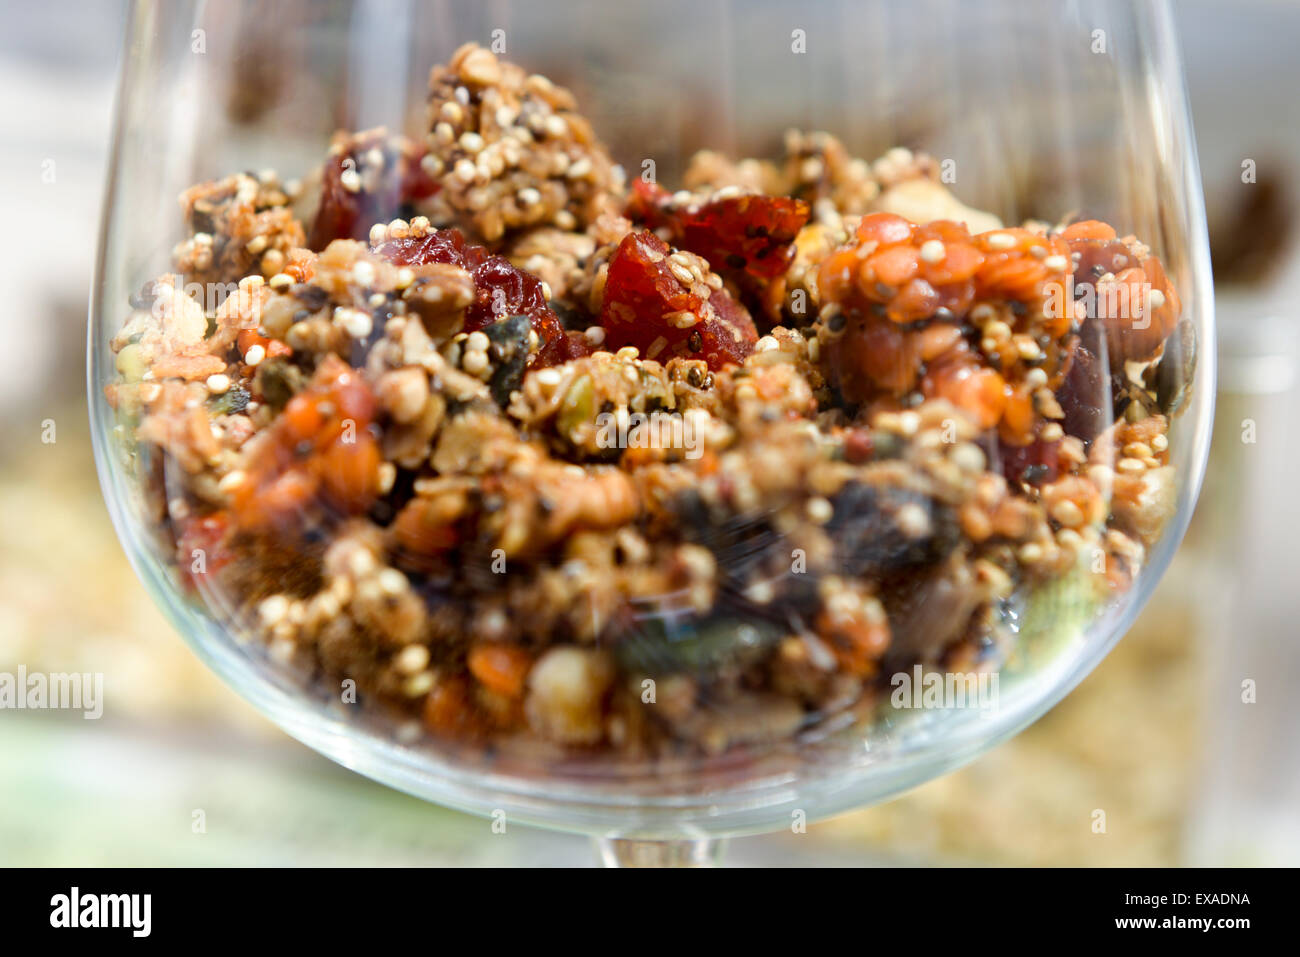 Muesli is a healthy diet for the strong people - Stock Image